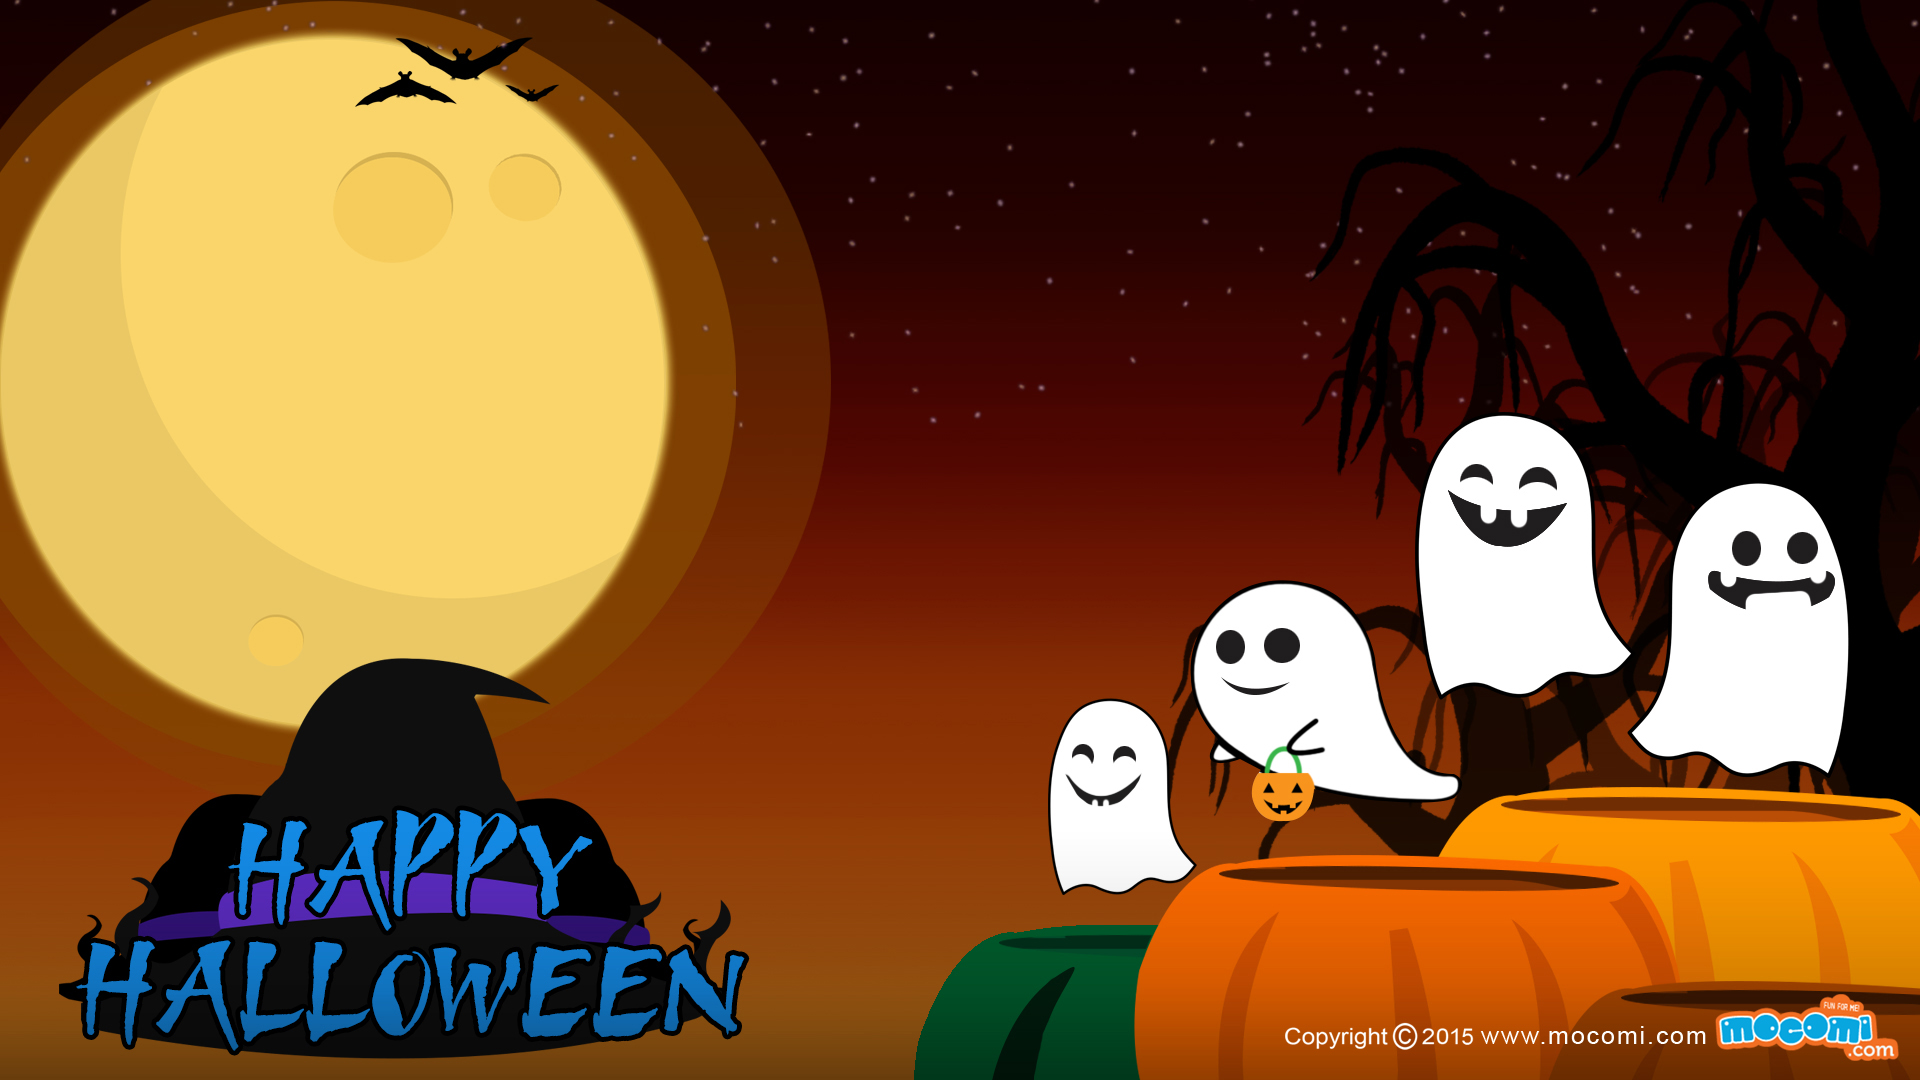 Happy Halloween Wallpaper – 05